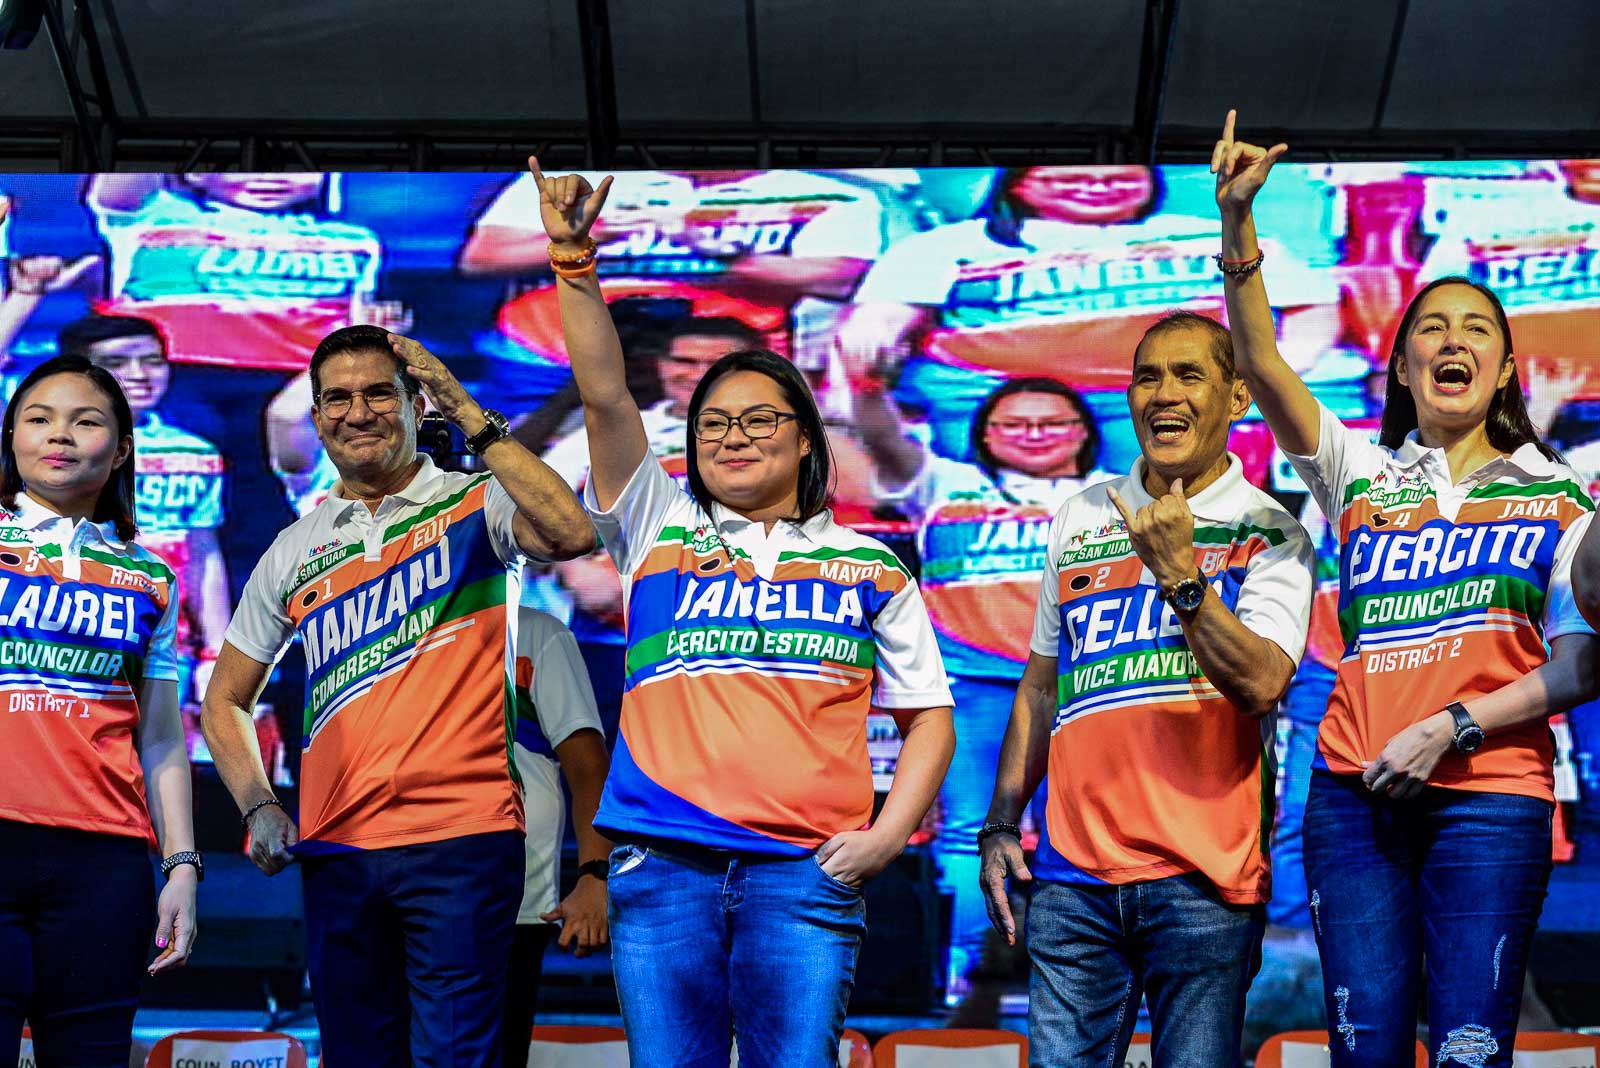 FOR LEGACY. Incumbent vice mayor and Pwersa ng Masang Pilipino mayoral candidate Janella Ejercito Estrada and her allies appear at the Team One San Juan miting de avance at the Pinaglaban Shrine grounds on May 11, 2019. Photo by Maria Tan/Rappler